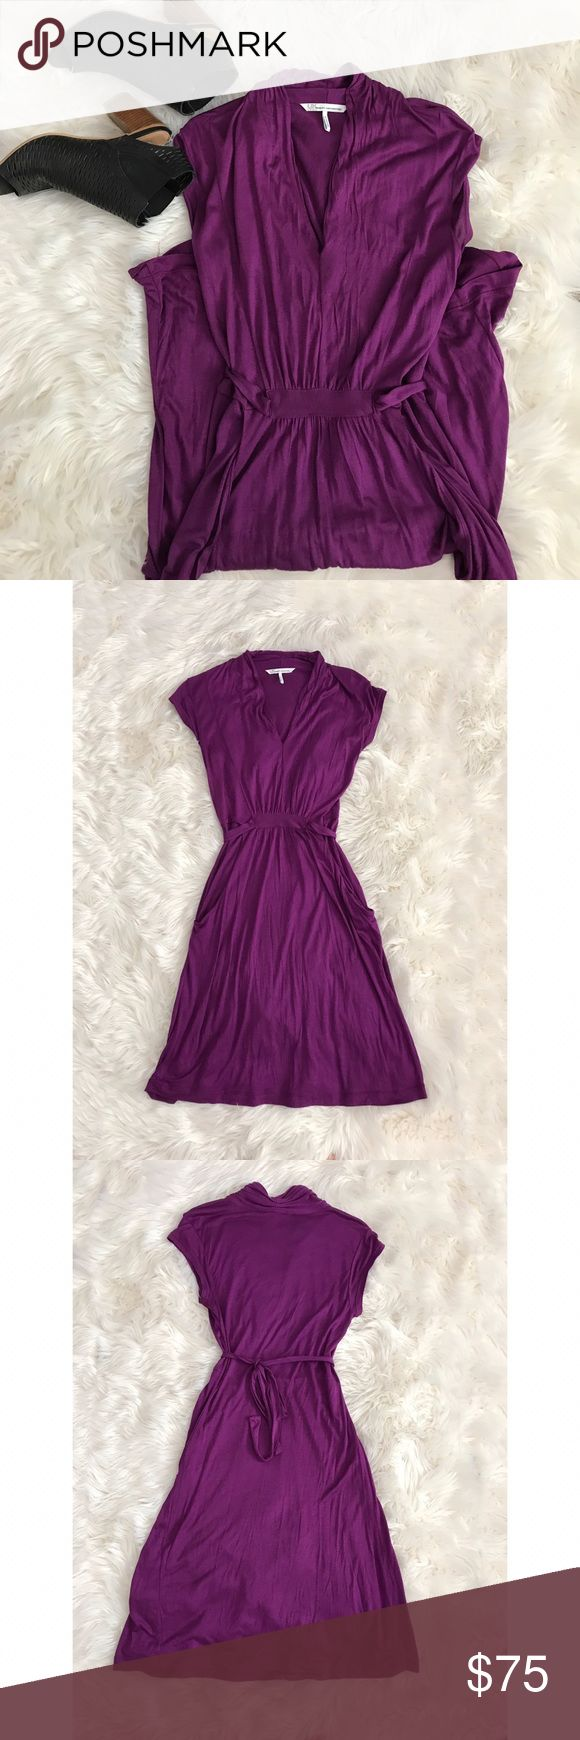 "UK Style by French Connection Pocket Dress UK Style by French Connection Pocket Dress.  Gorgeous electric purple color, 100% Rayon super soft material.  Waist tie belt, tie on back or wrap around twice.  Two front side pockets.  Measurements- Bust 17"" across.  Waist 14"".  Length 39"" measured lying flat without stretching. UK Style by French Connection Dresses"